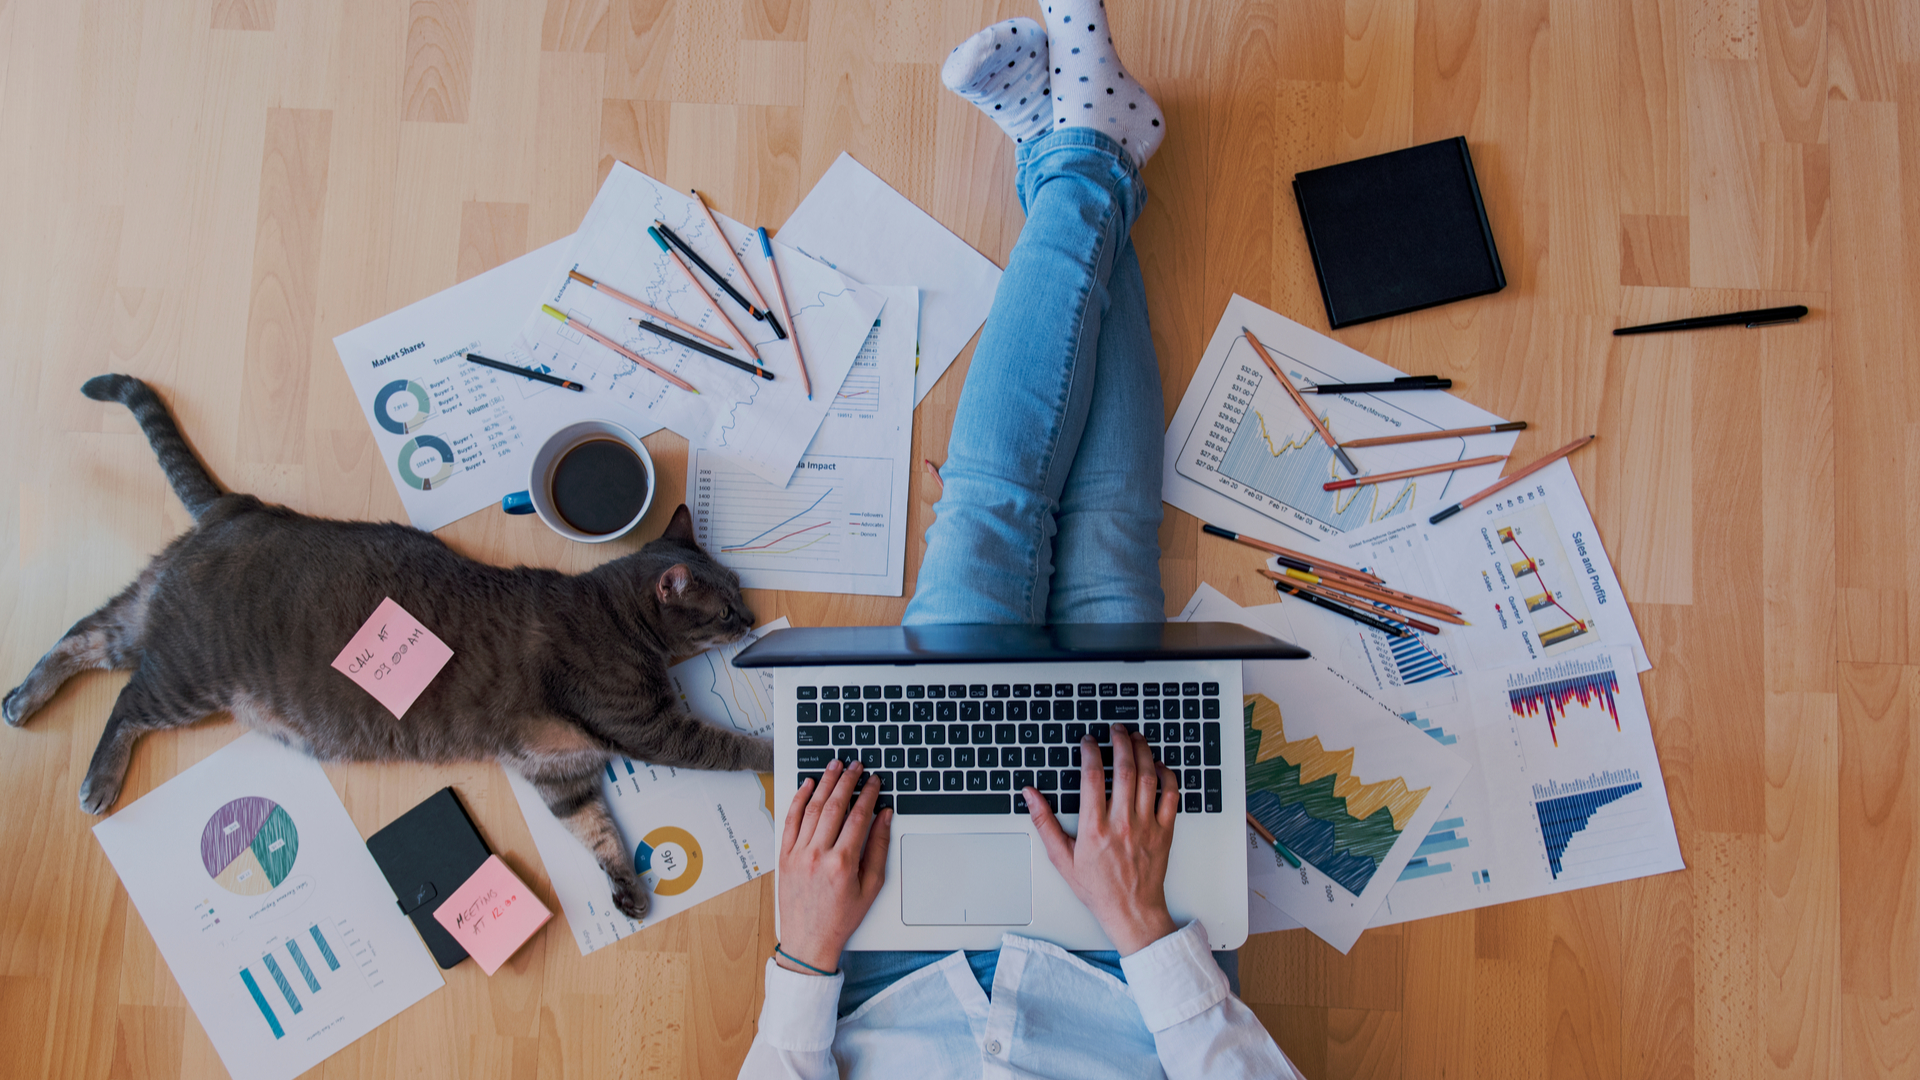 Australia: Risks associated with working from home